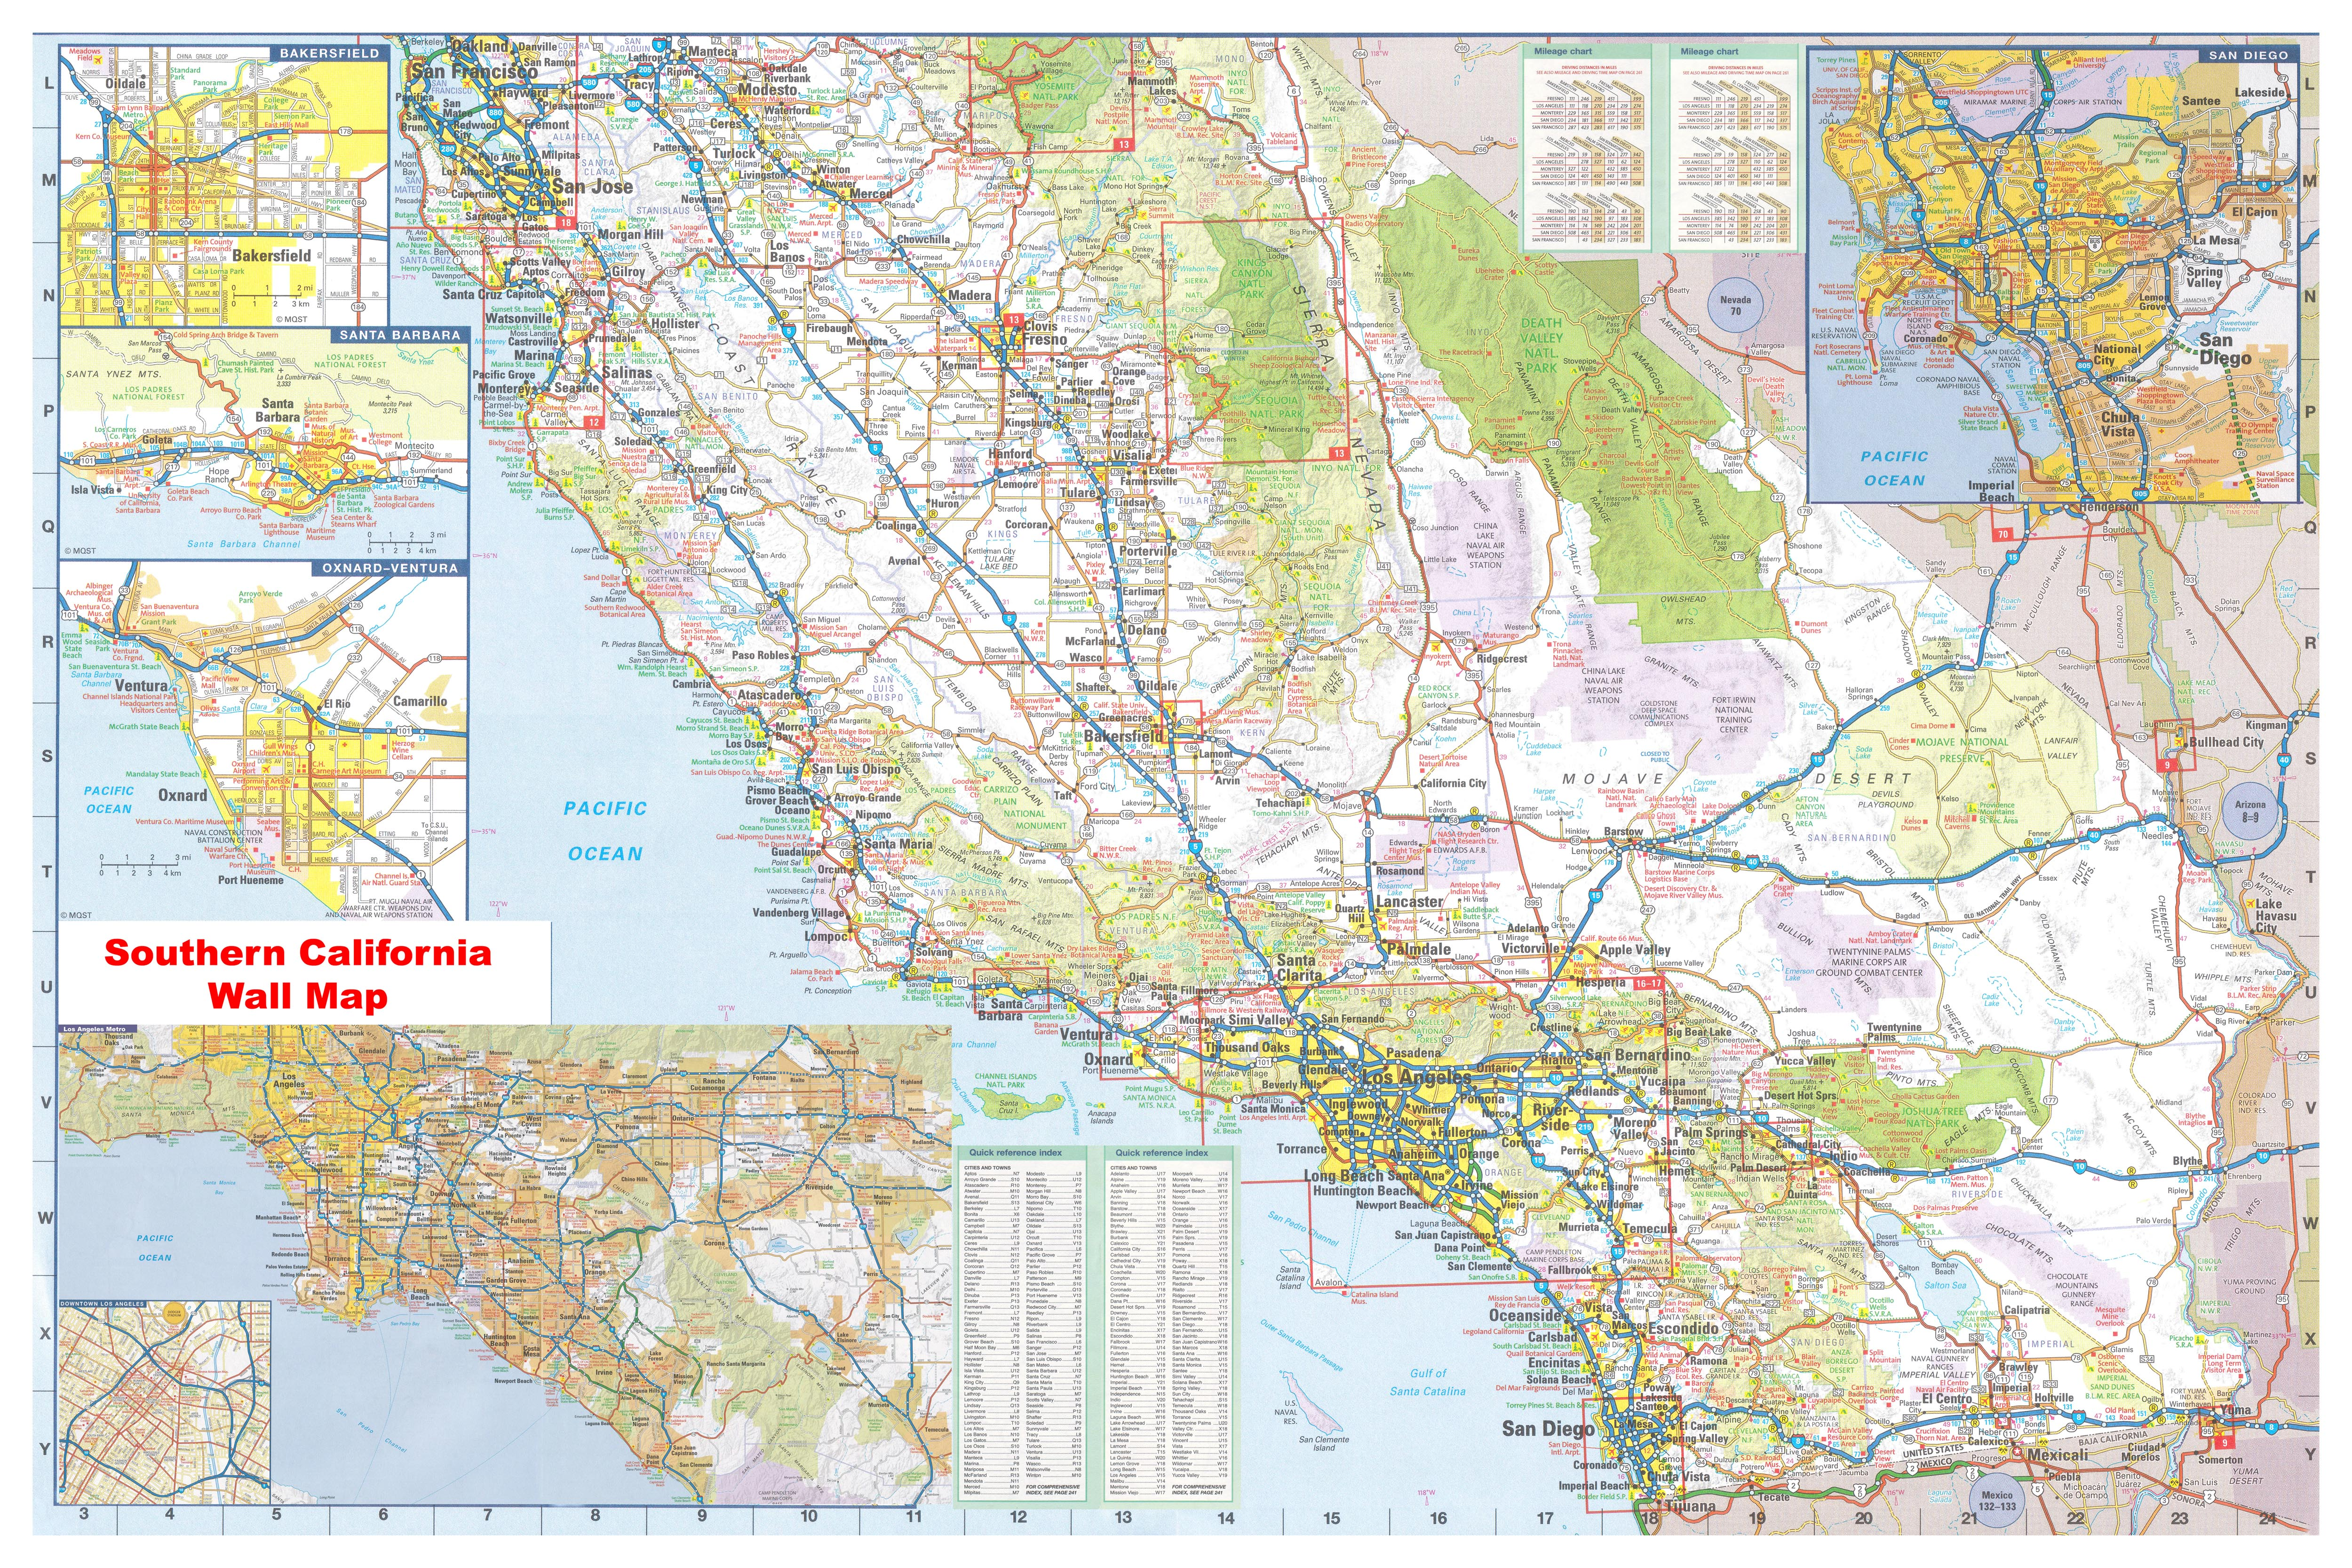 California Southern Wall Map Executive Commercial Edition - Southern ca map